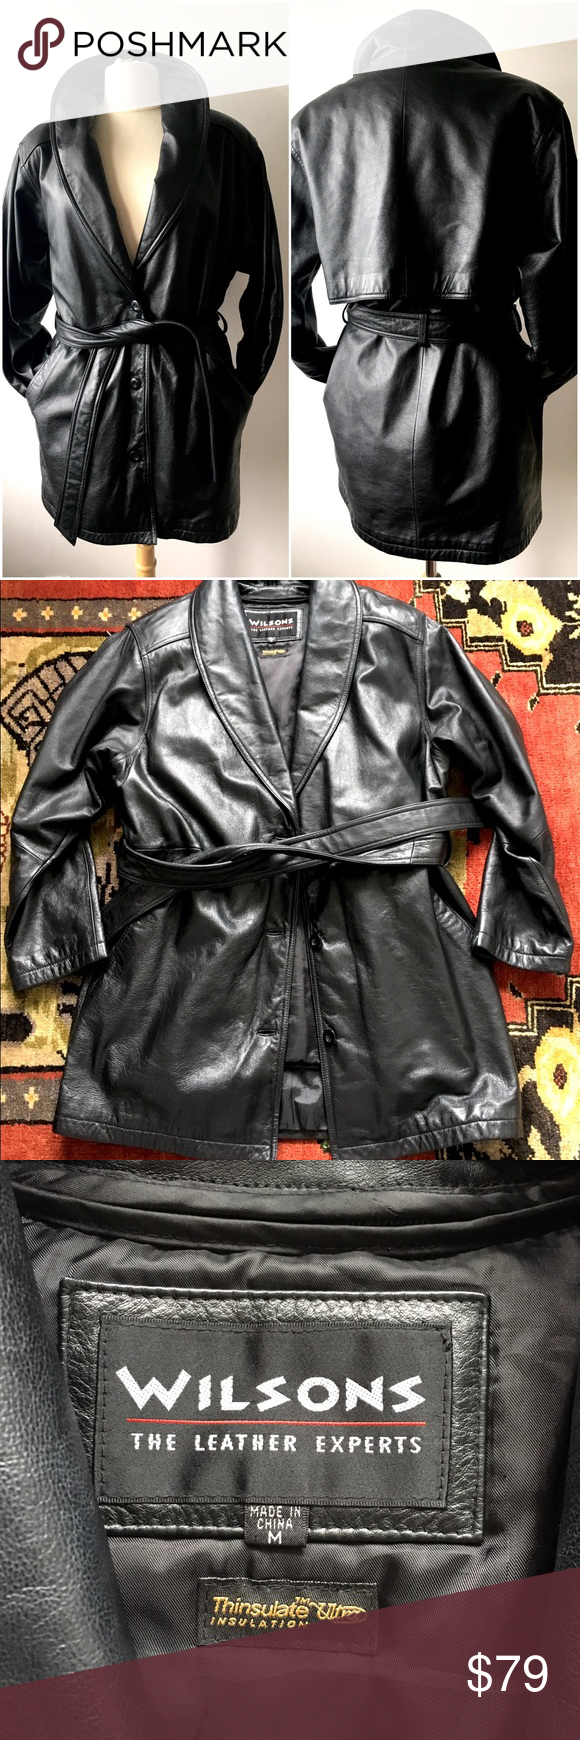 Wilson Leather Thinsulate Coat size M Wilsons leather